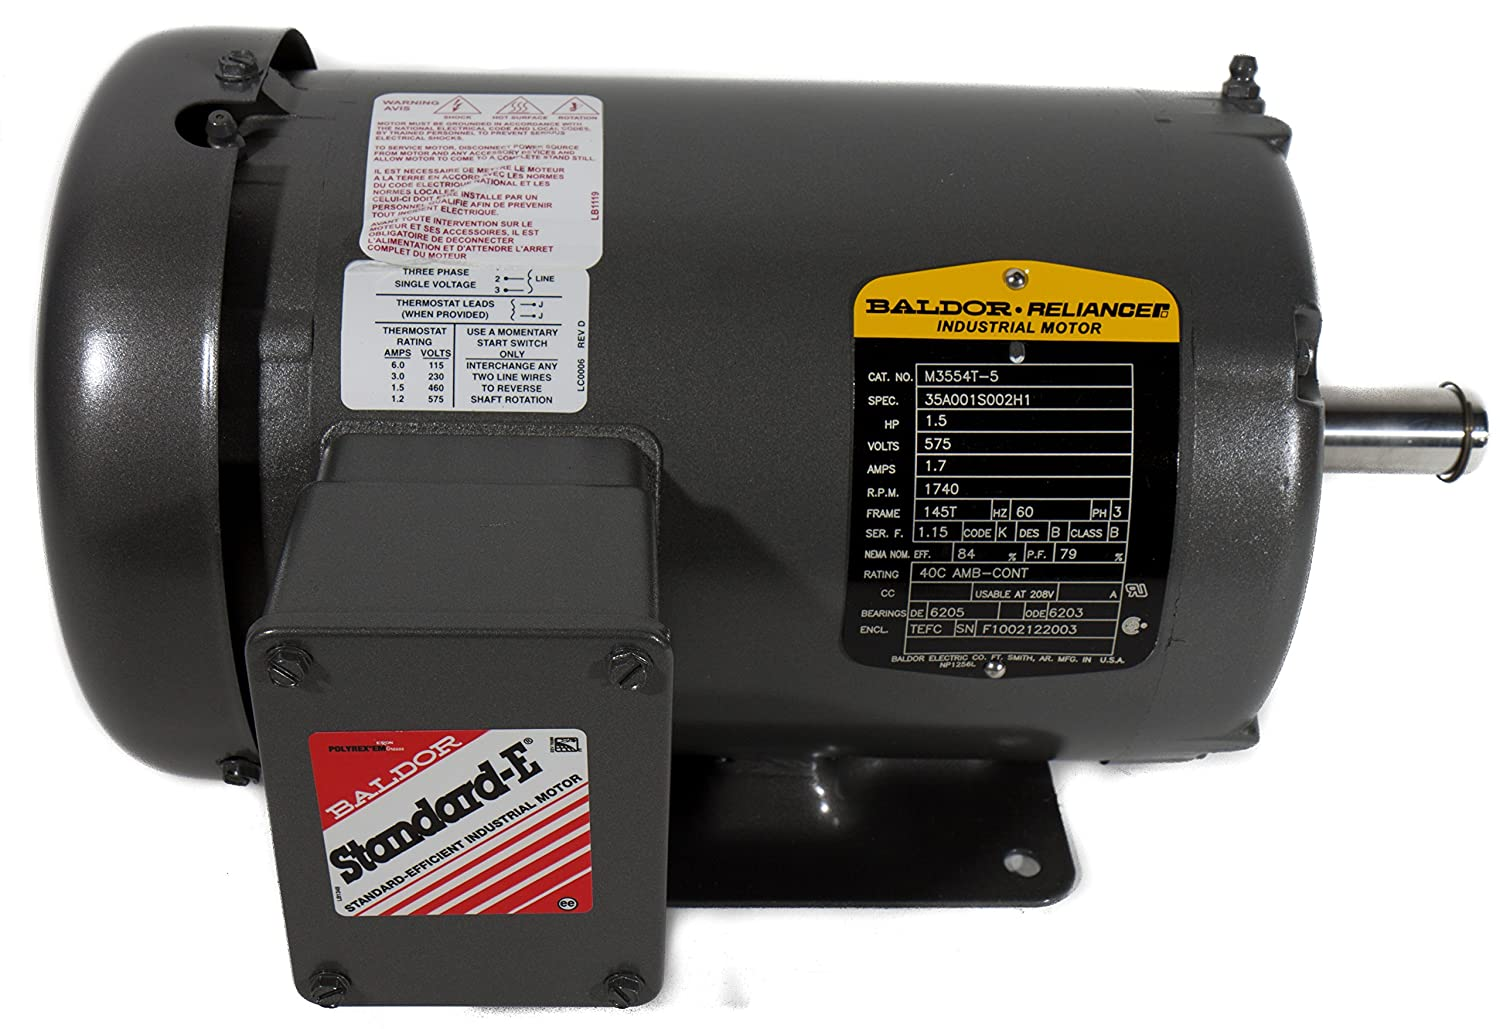 Baldor Electric M3554T-5 145T Frame TEFC AC Motor, 1-1/2 hp, 1740 RPM, 575V, 60 Hz, 3 Phase, 3524M, F1